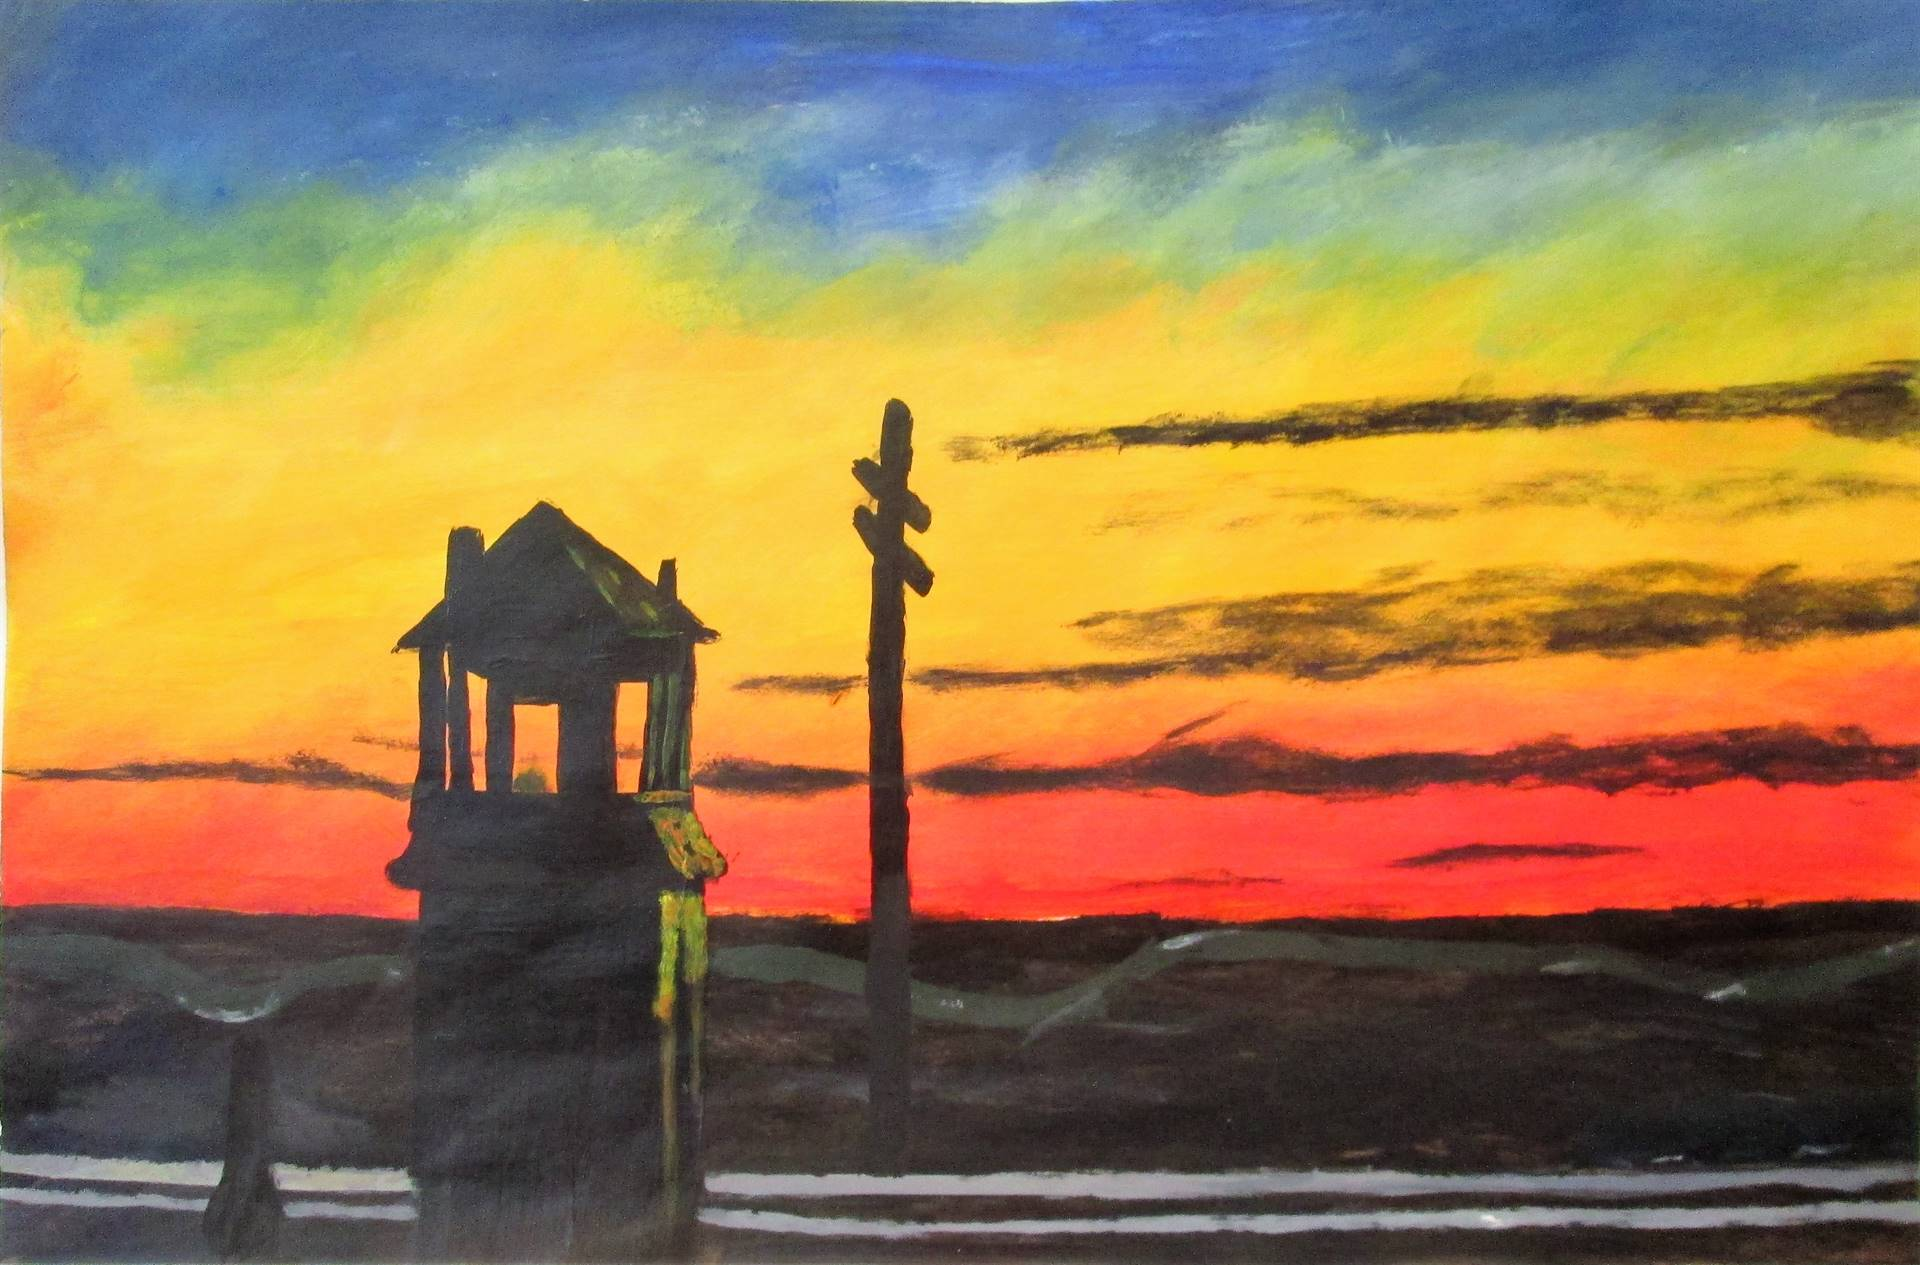 Image of student artwork based on the artist Edward Hopper.